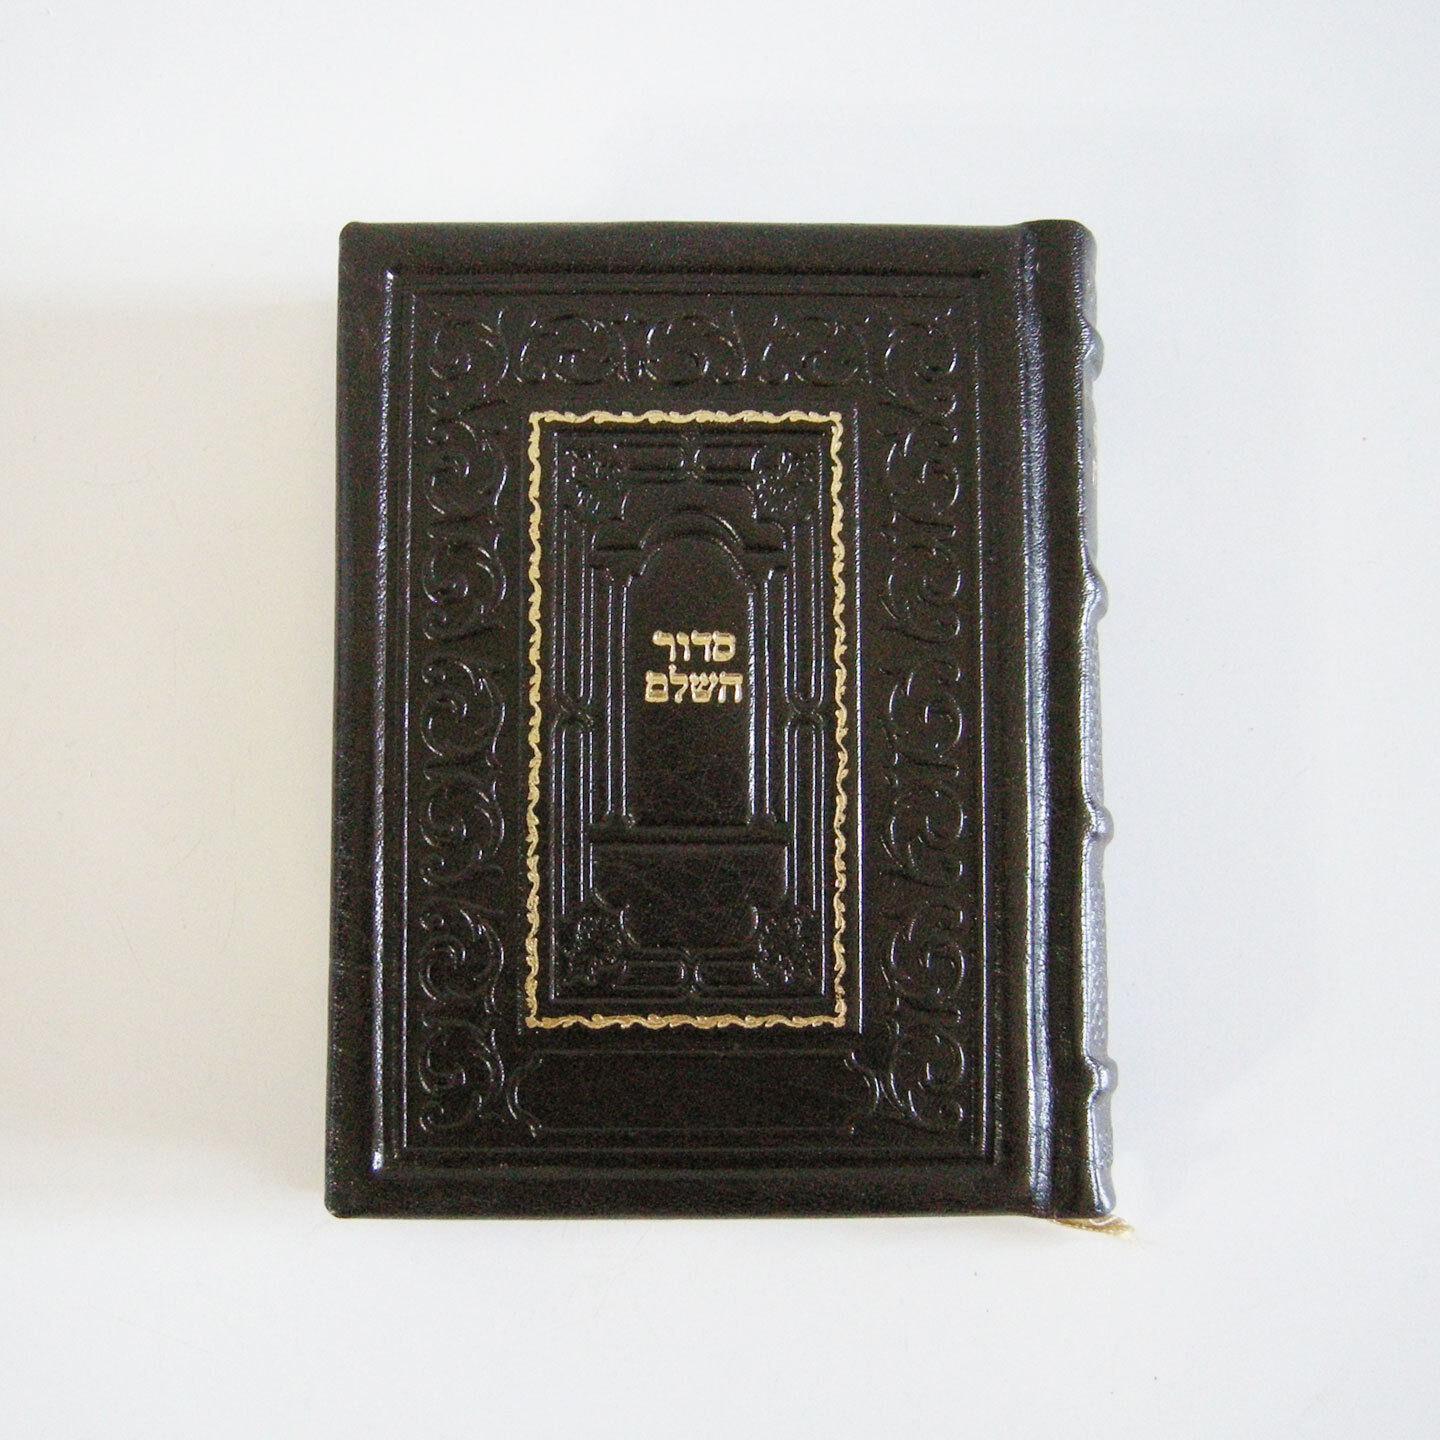 Genuine Leather-Bound Pocket Siddur Gilded Pages Hebrew Handmade Miller Israel (מוכר מישראל) 9